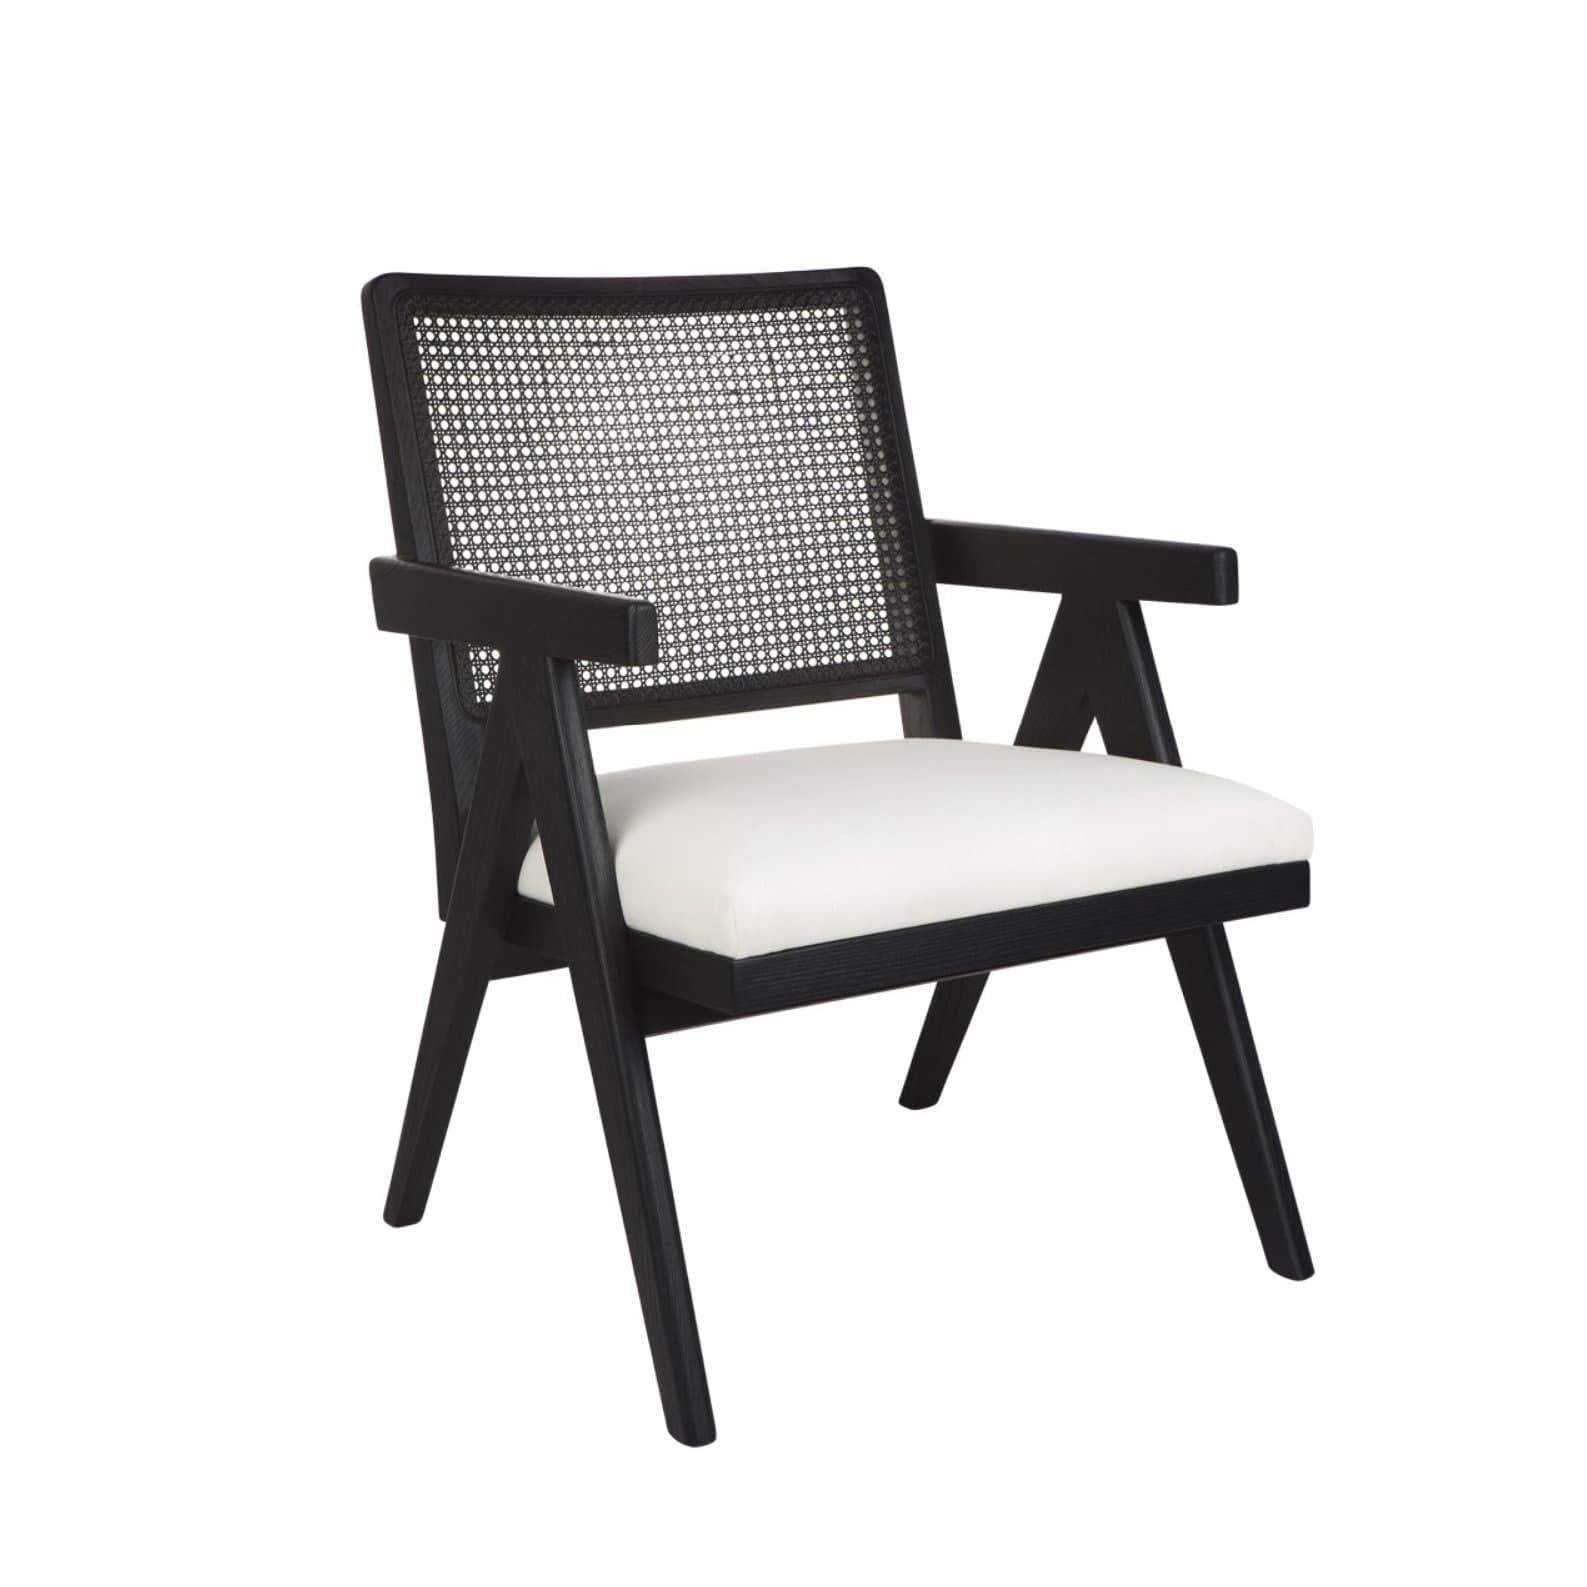 The Imperial Rattan Arm Chair - Black | Attica Home | Luxury Furniture Sydney